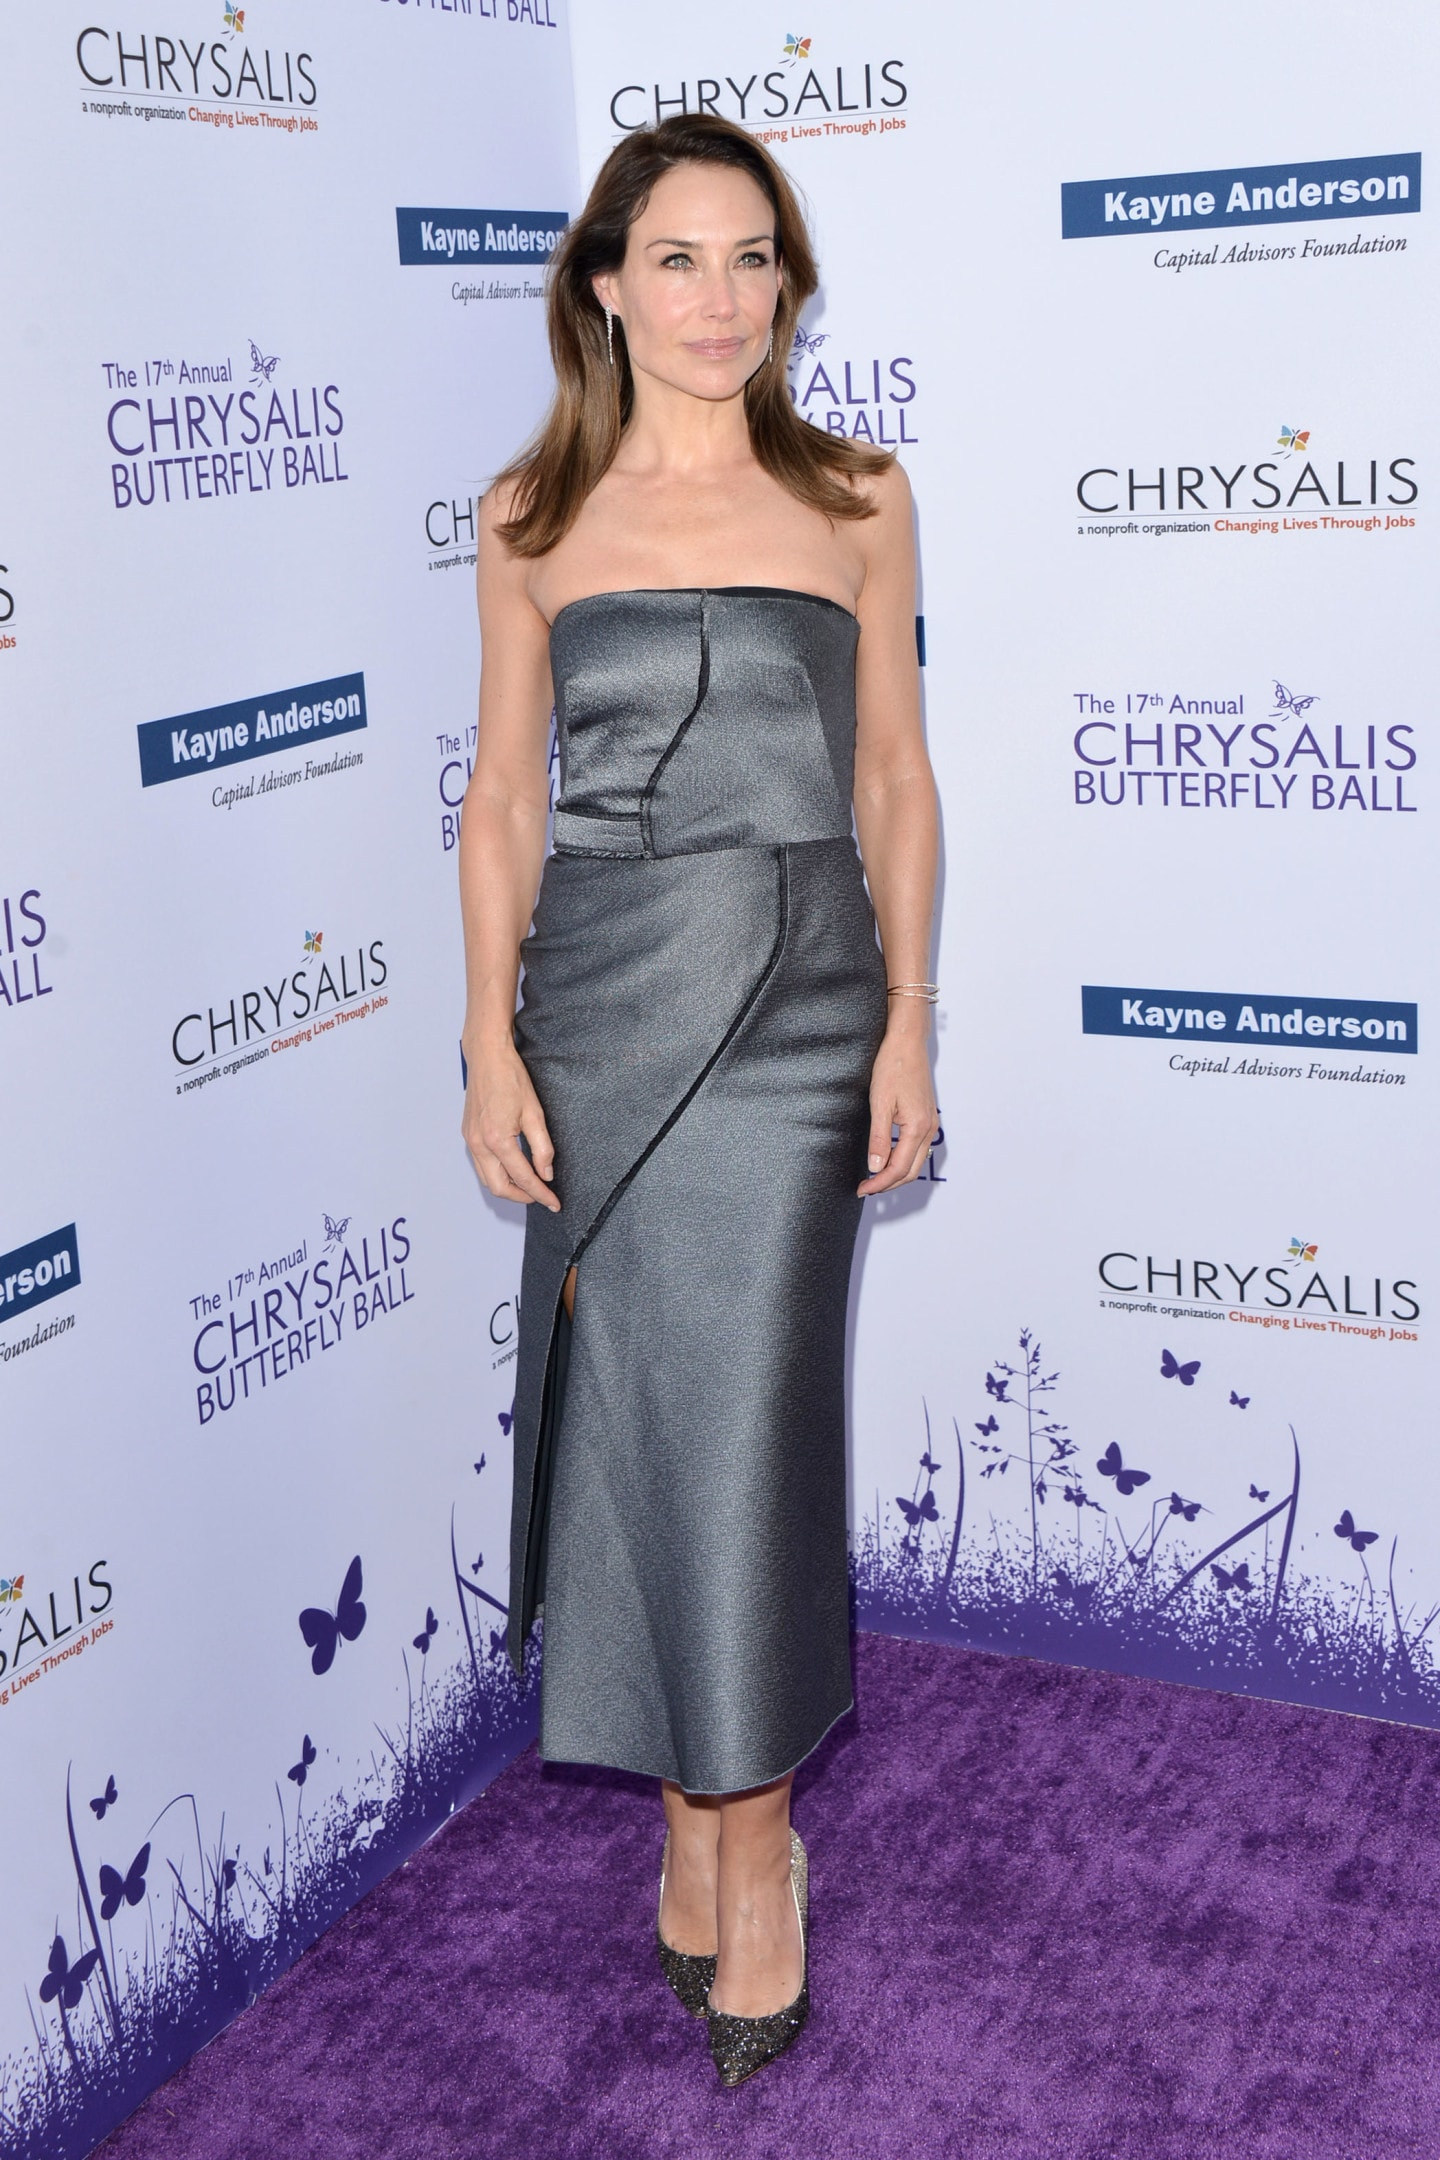 claire-forlani-17th-annual-chrysalis-butterfly-ball-in-los-angeles-1-min